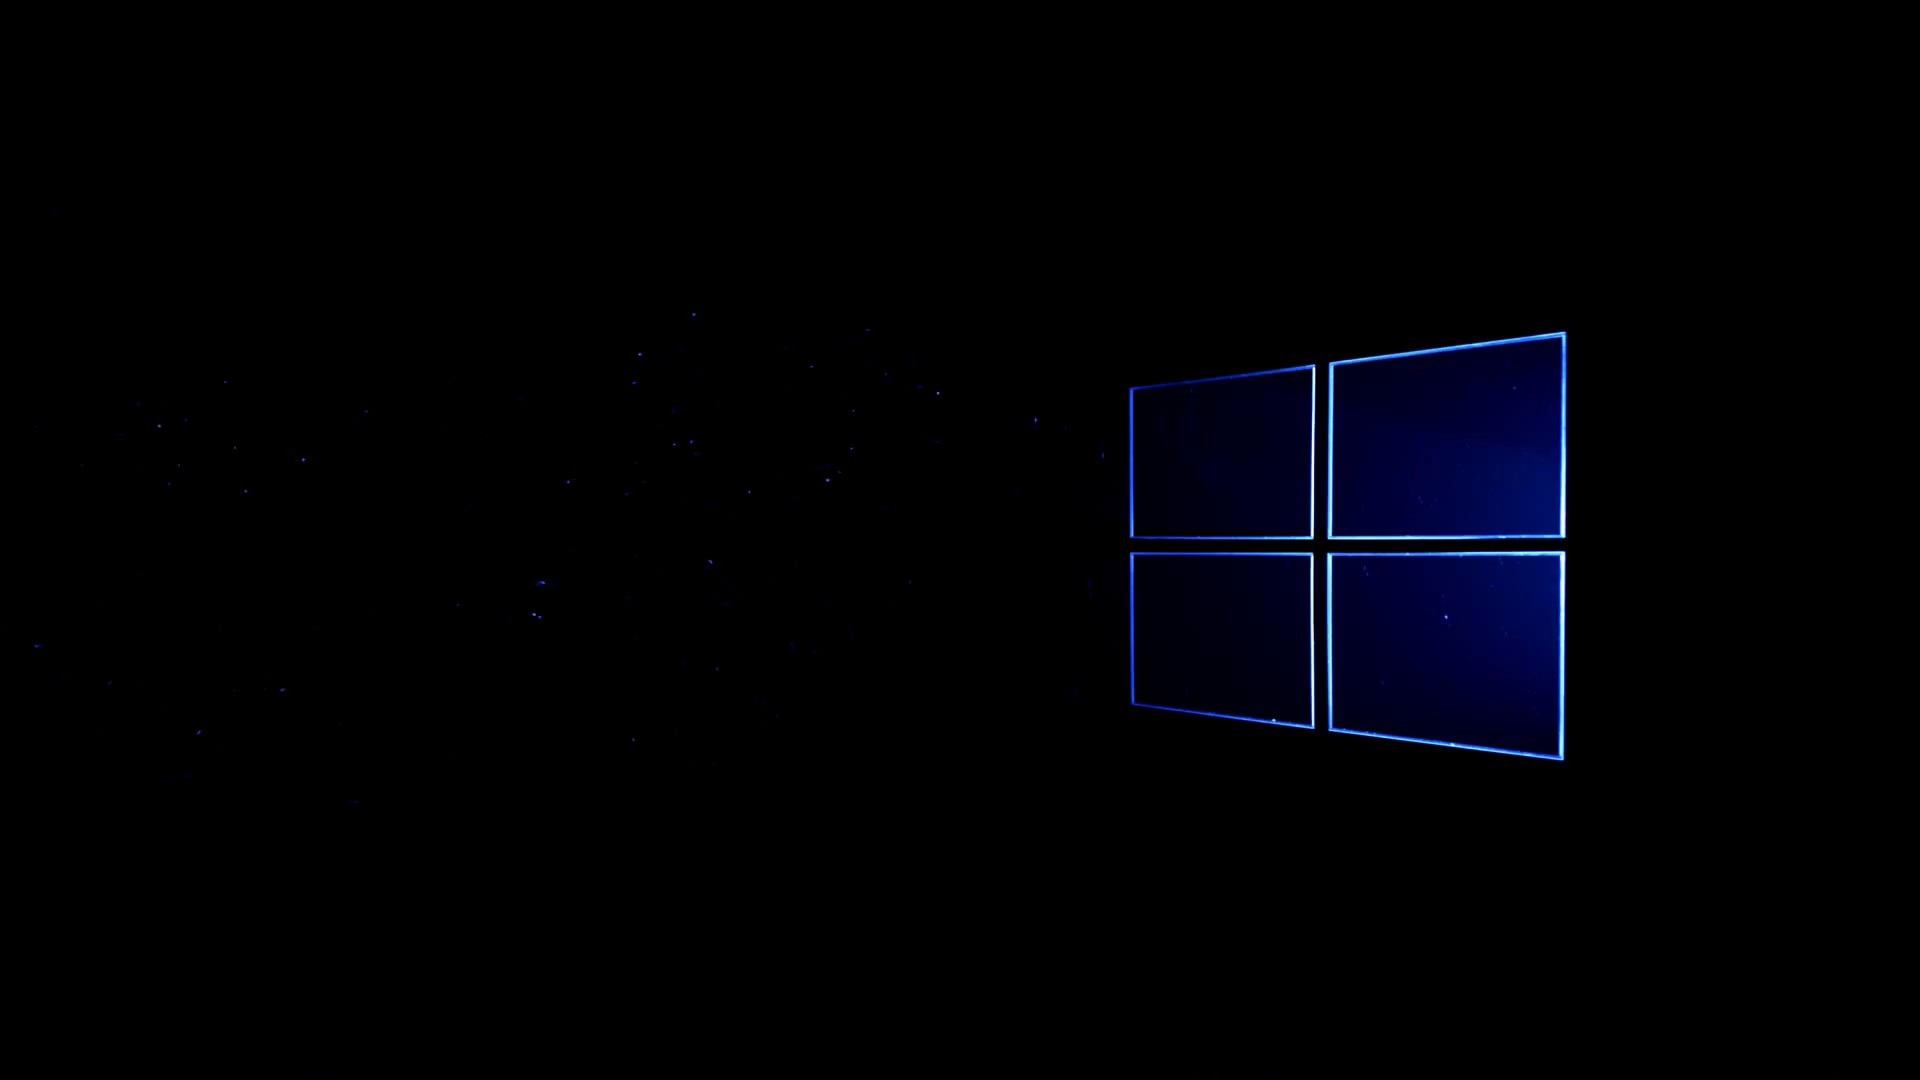 windows 10 wallpapers high quality download free